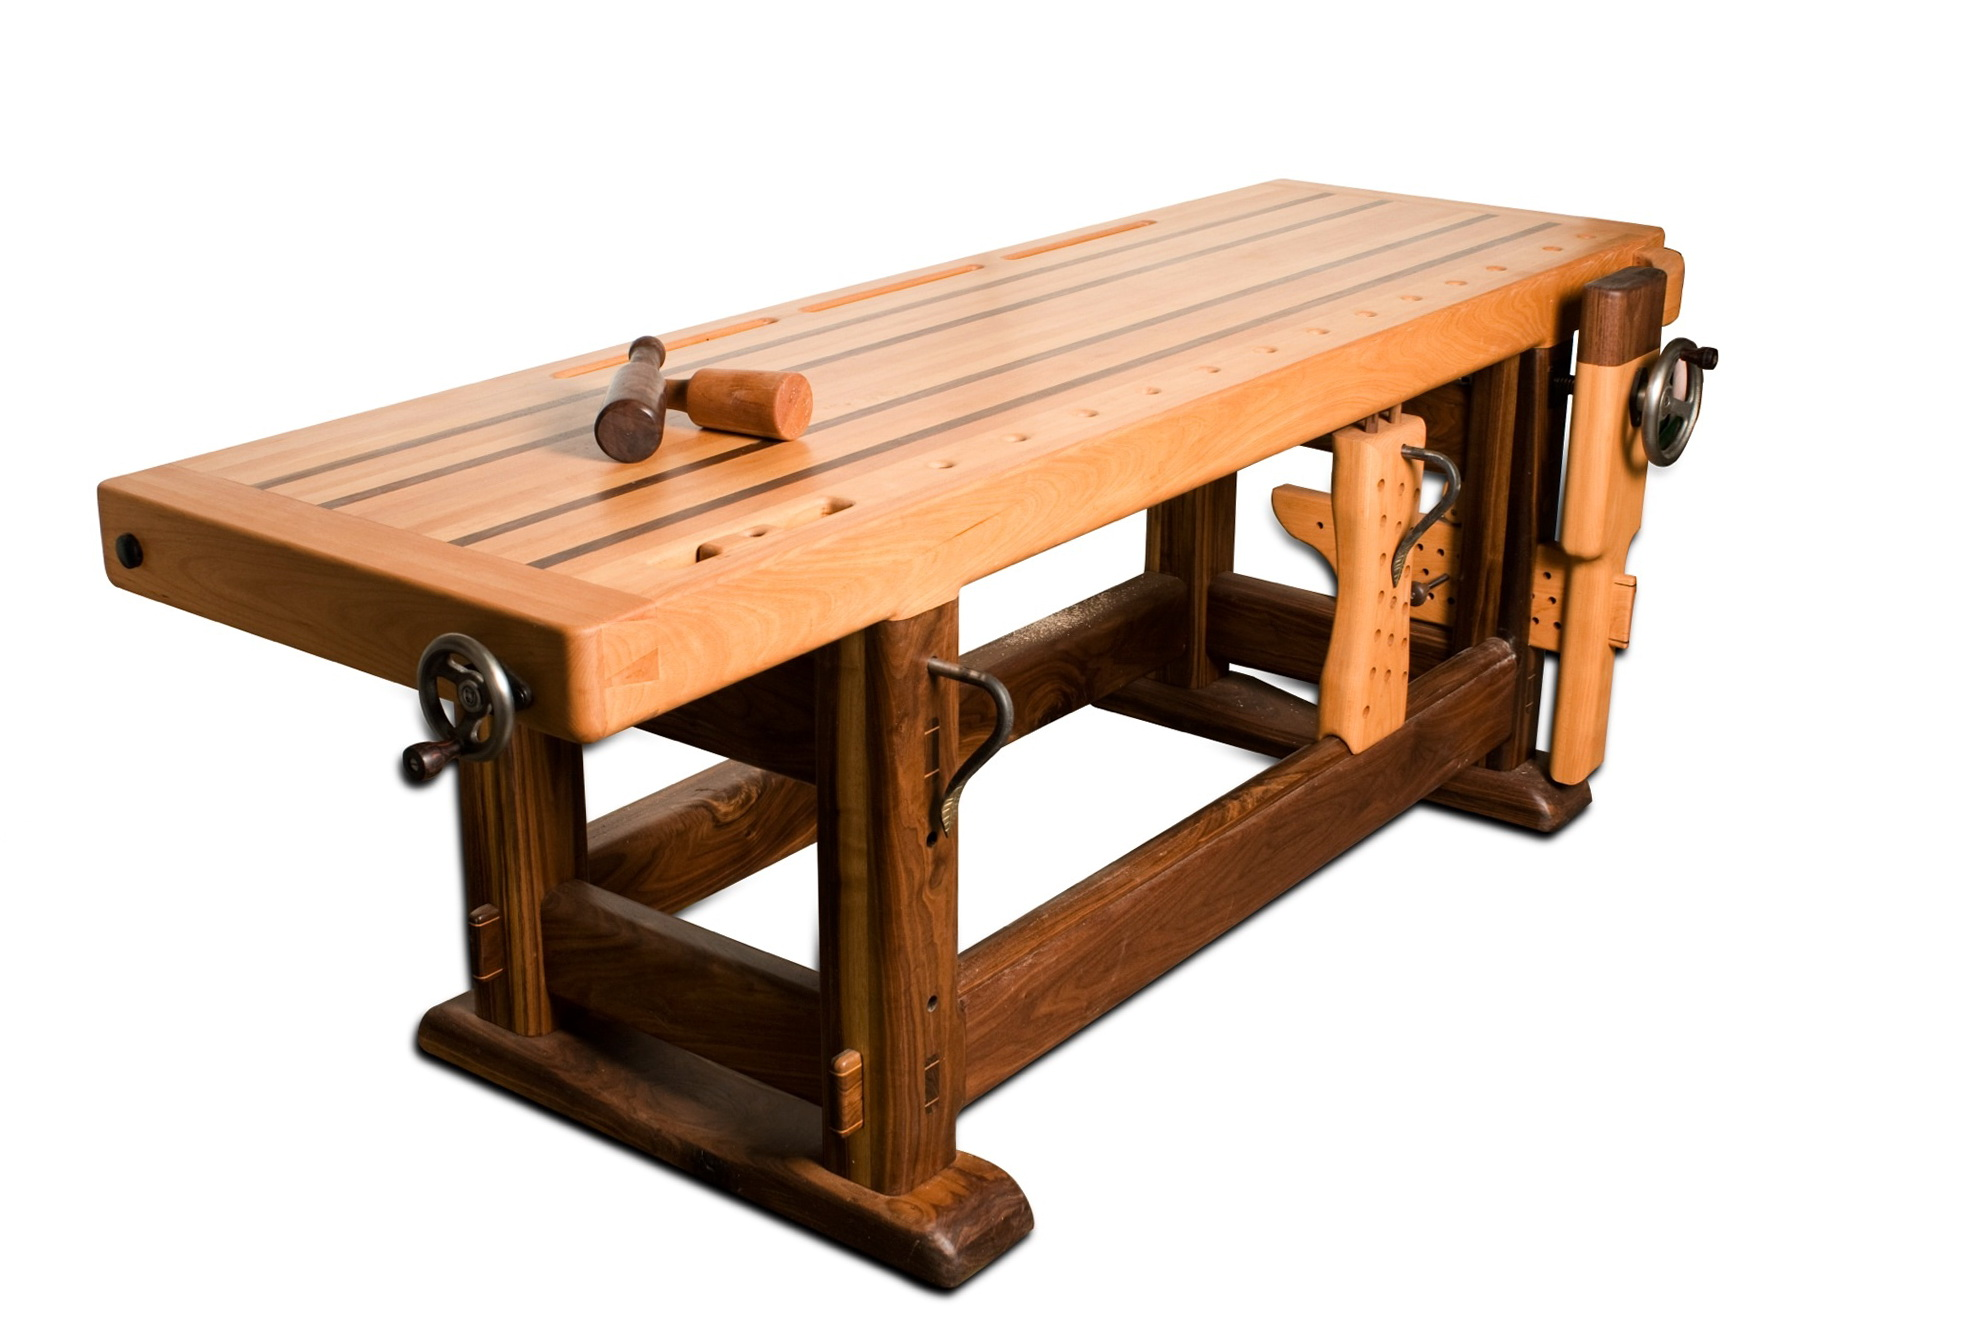 Woodworking Bench Ideas Part - 27: Fine Woodworking Bench Plans